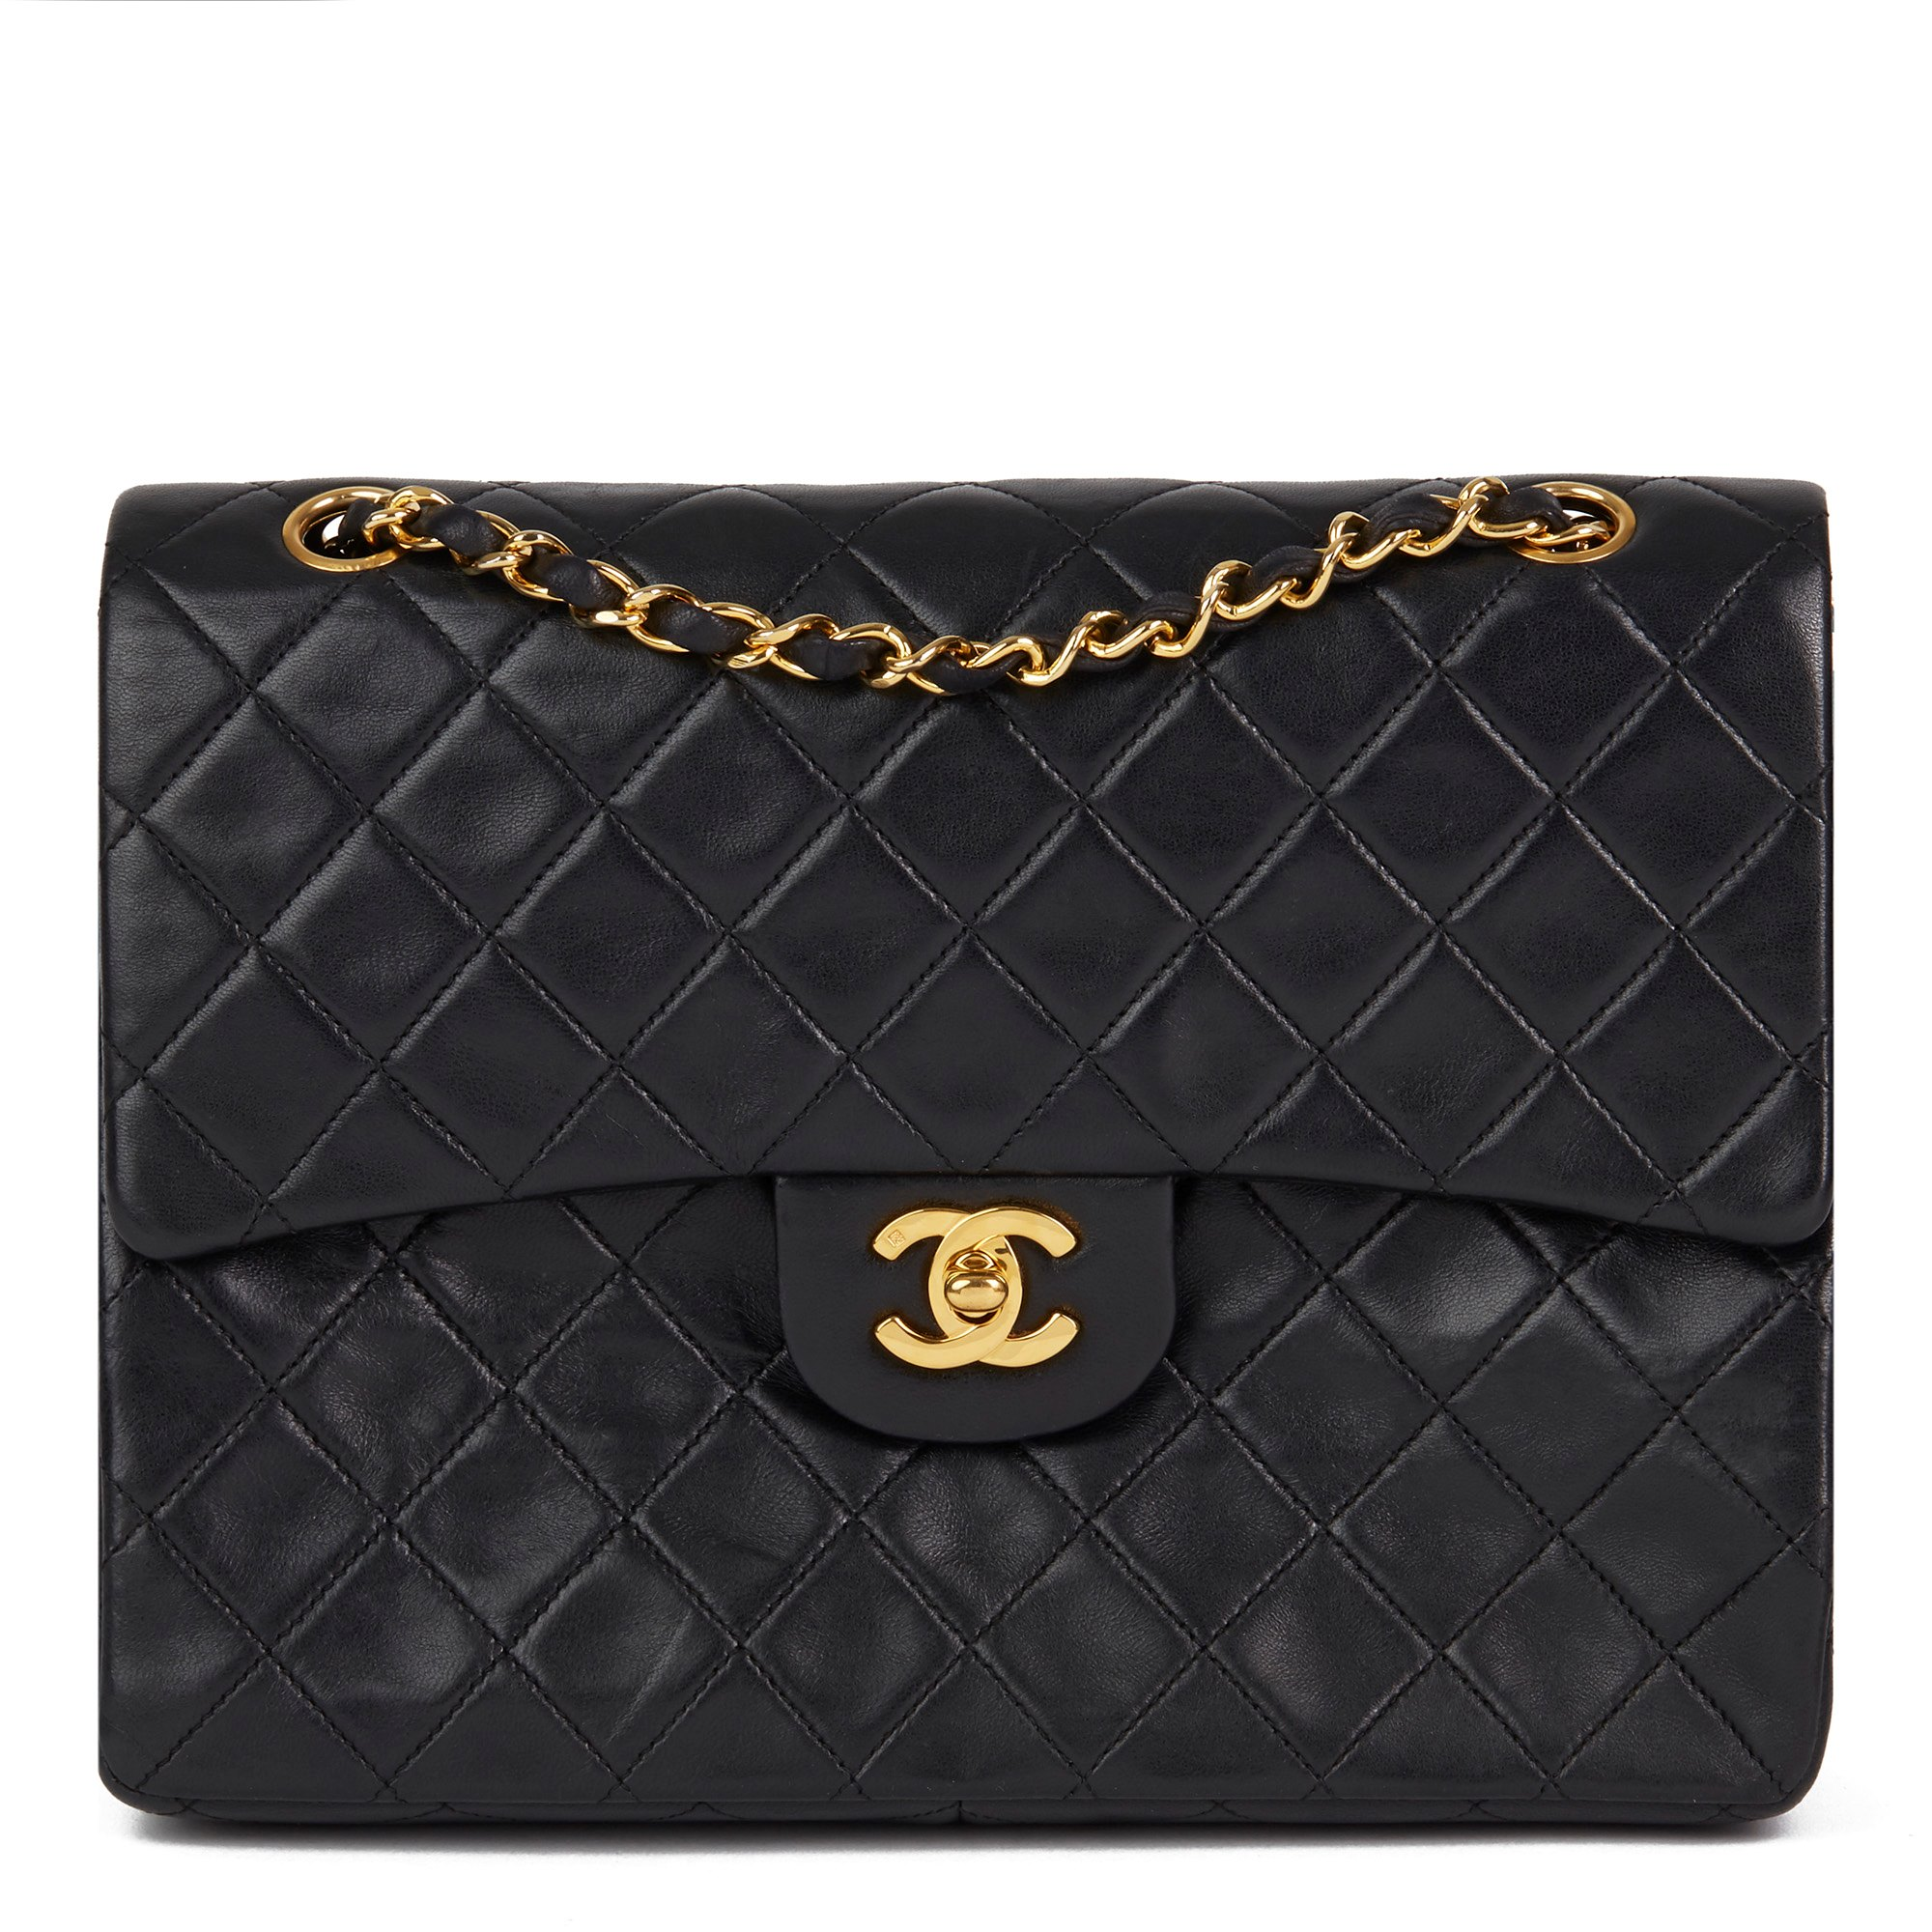 Chanel Black Quilted Vintage Lambskin Medium Tall Classic Double Flap Bag